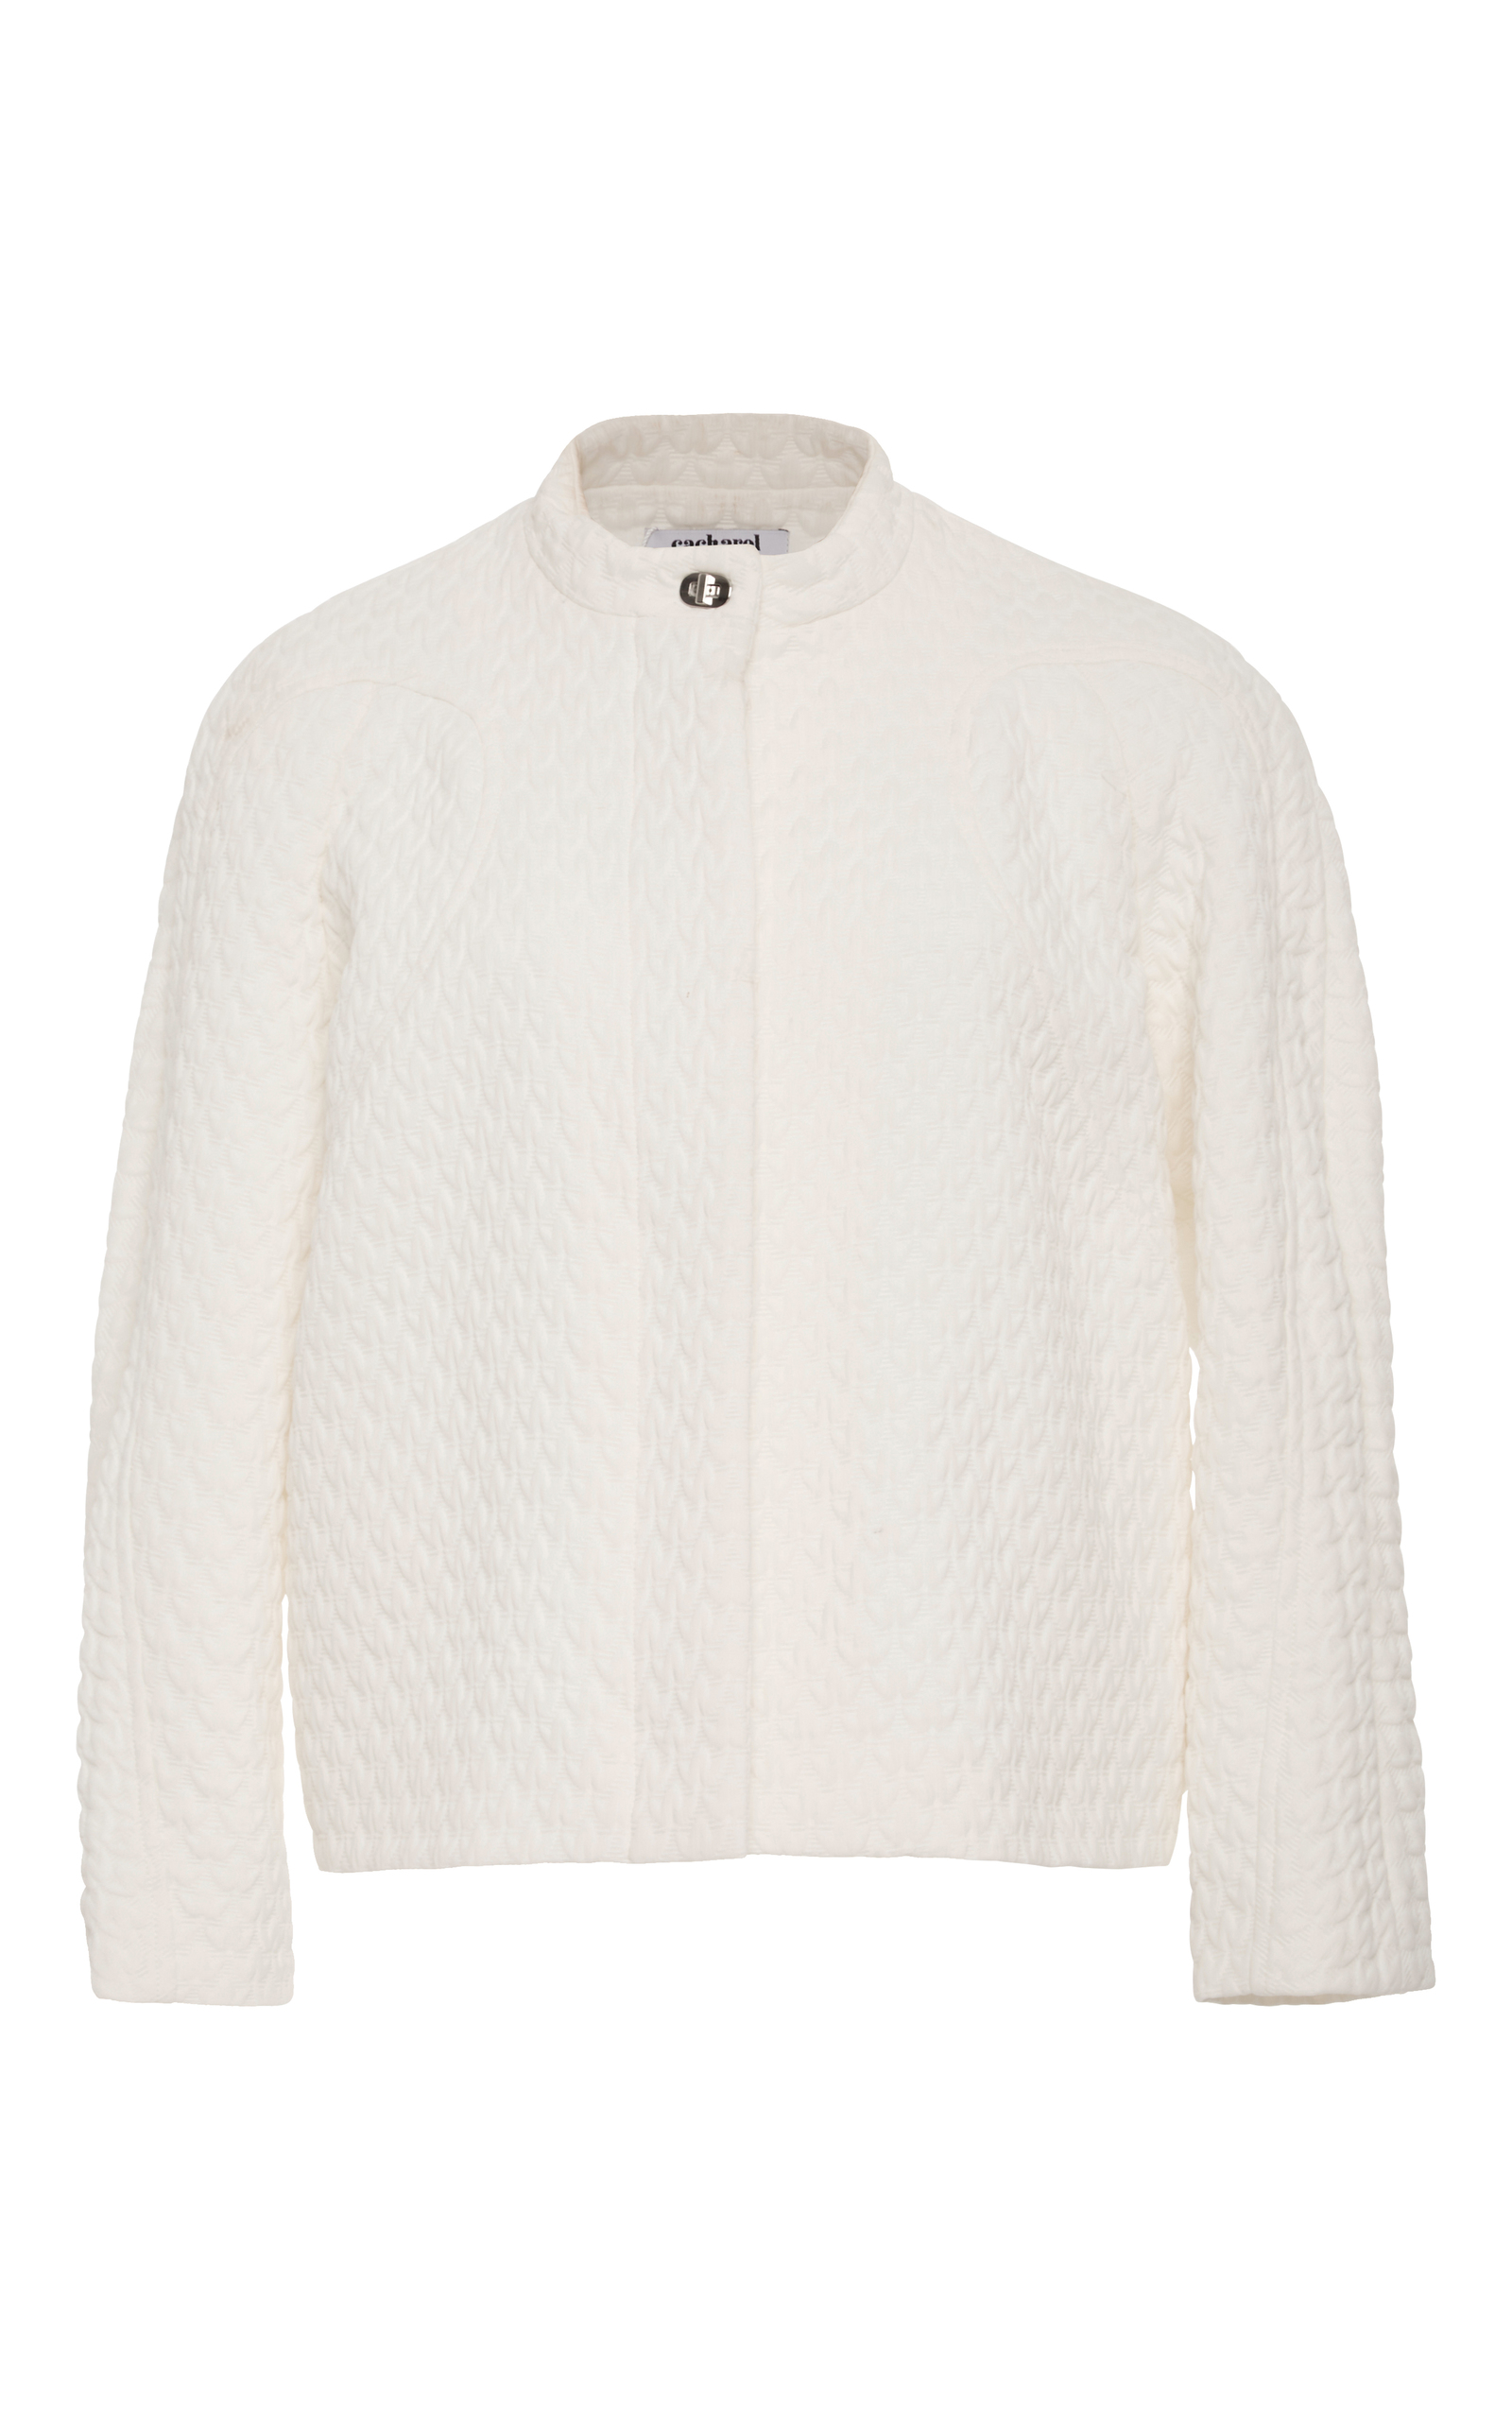 080b62767c0 Quilted Long Sleeve Jacket by Cacharel   Moda Operandi